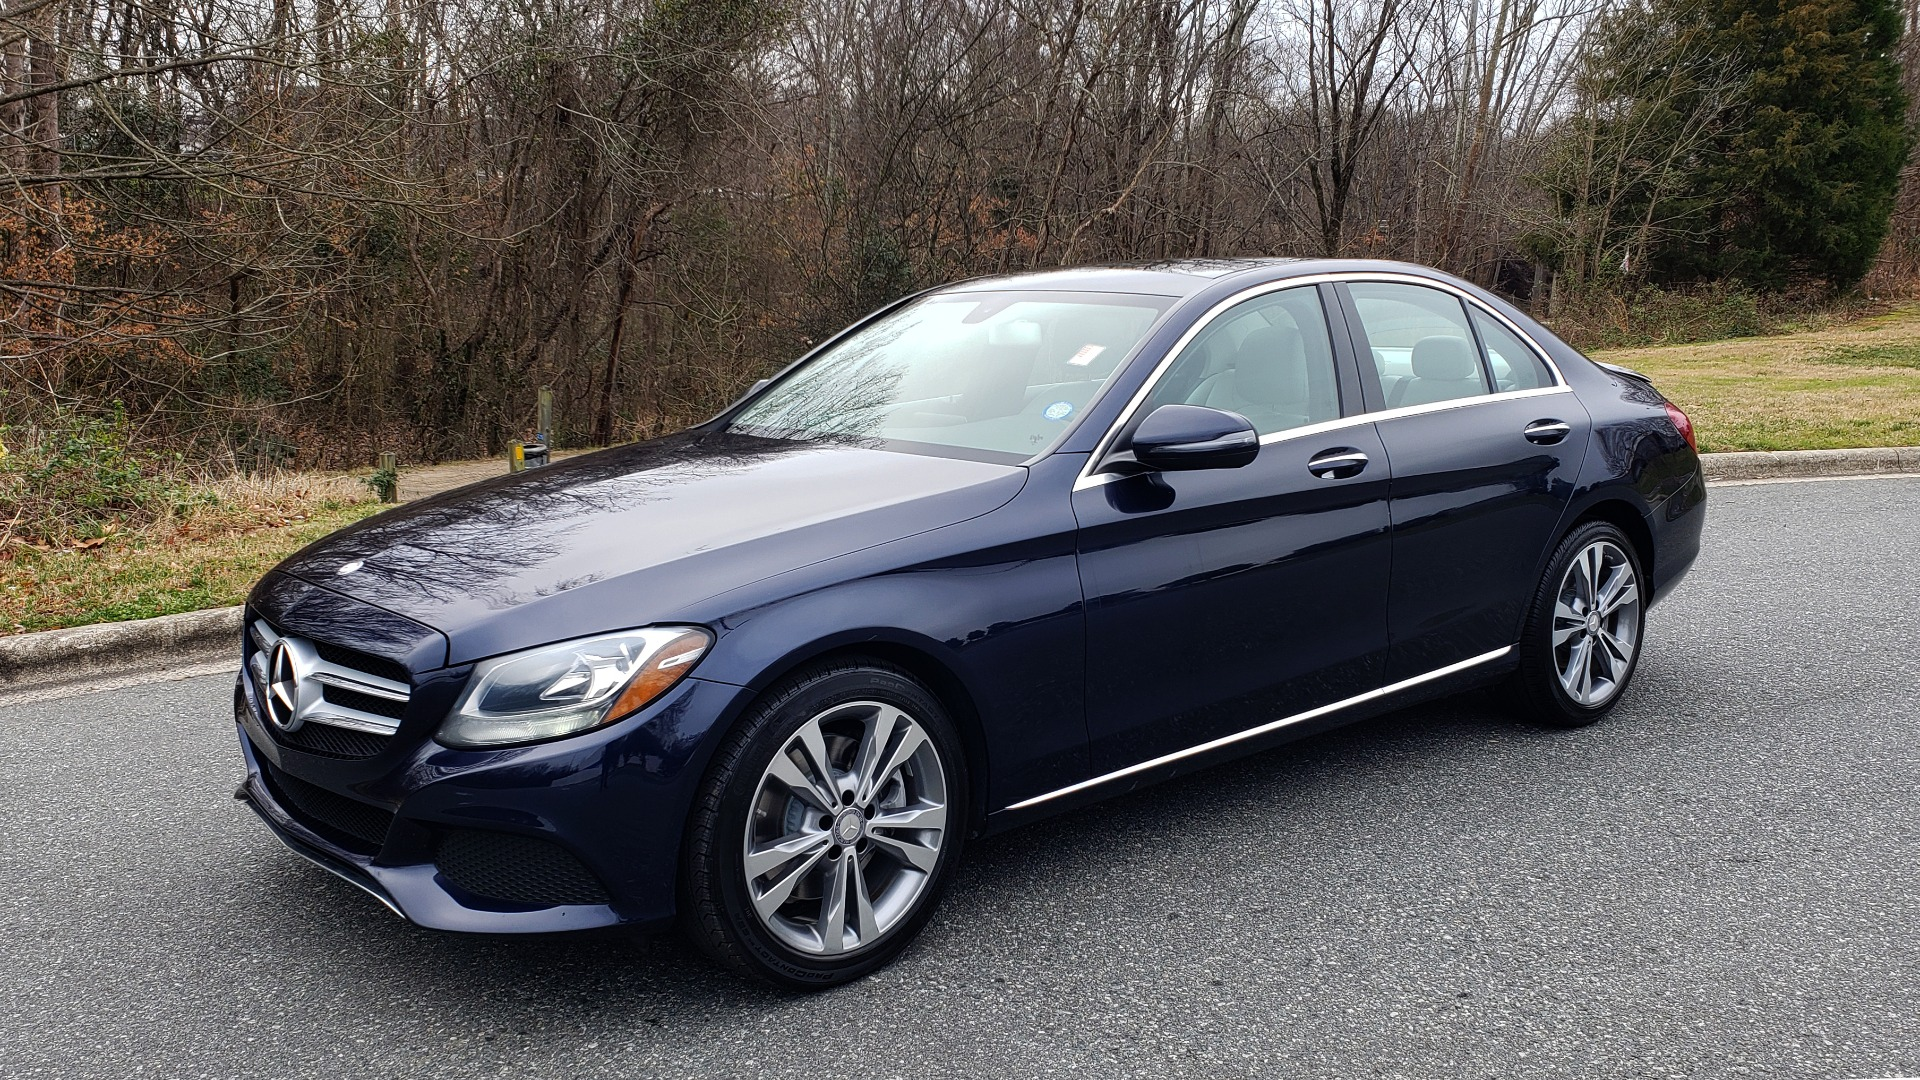 Used 2016 Mercedes-Benz C-CLASS C 300 / PREM PKG / PANO-ROOF / BSA / HTD STS / REARVIEW for sale Sold at Formula Imports in Charlotte NC 28227 1